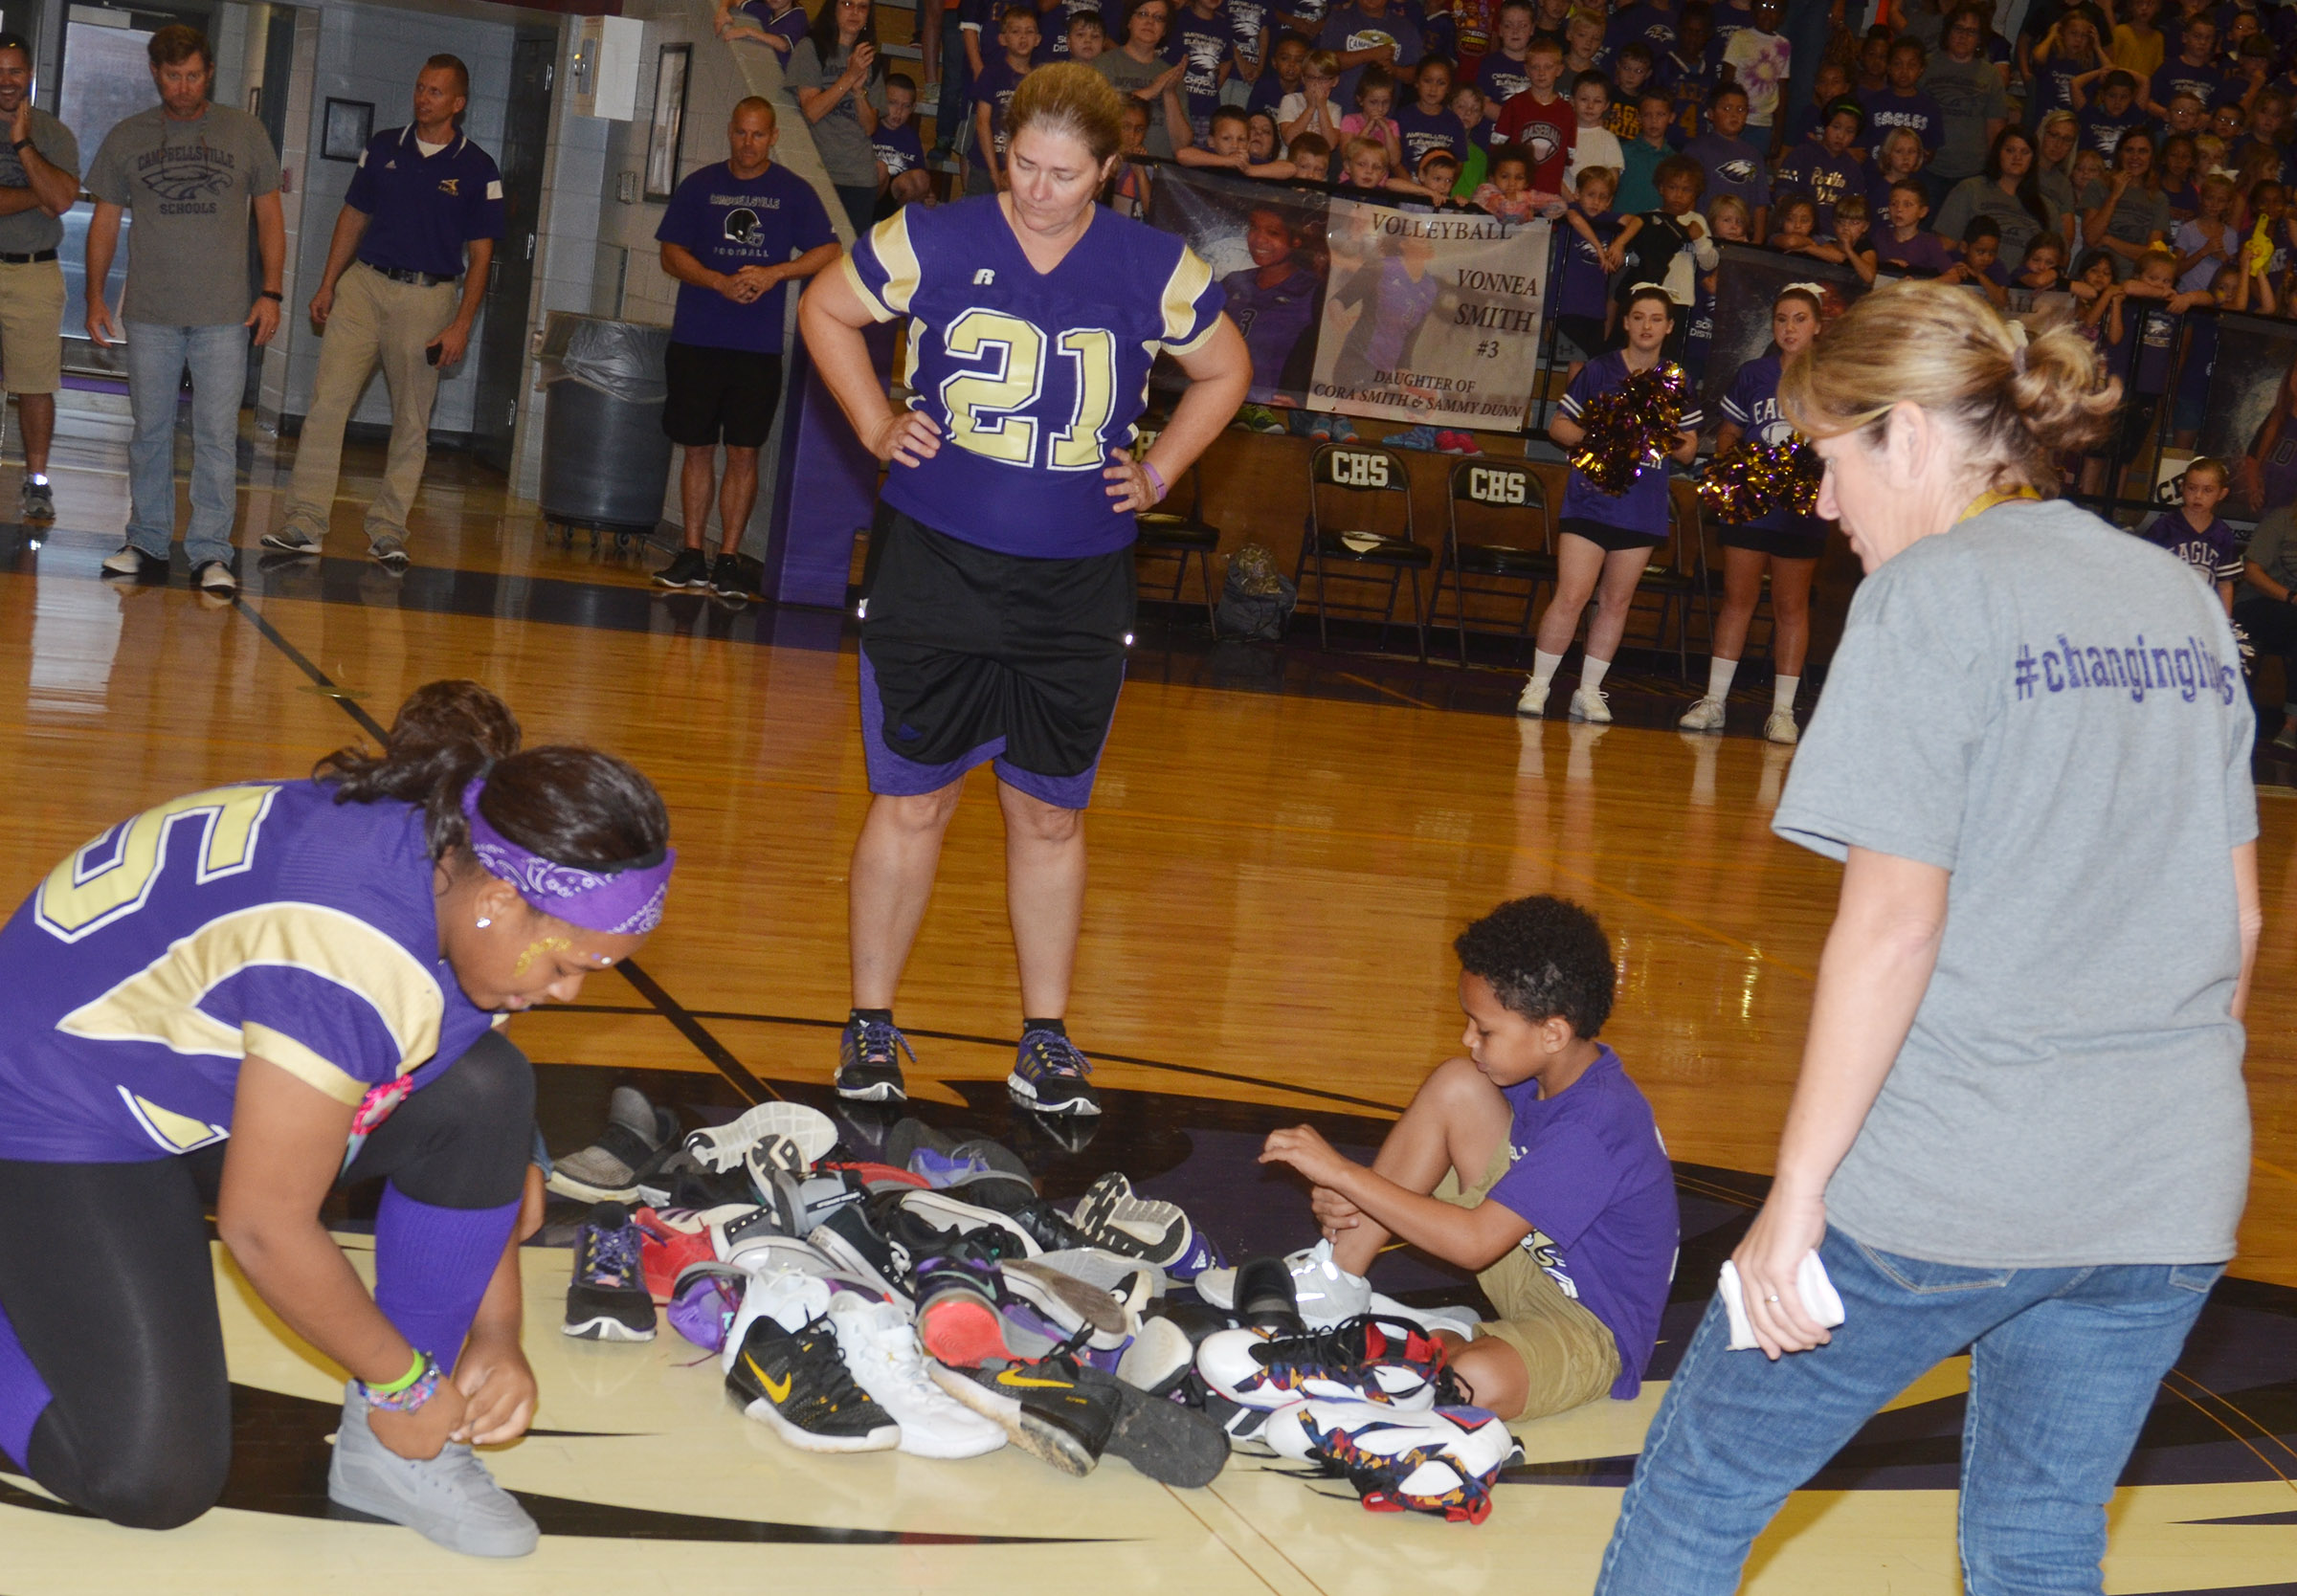 CHS senior Kayla Young, at left, and CES fourth-grader Anthony Goins compete in the shoe mountain game.